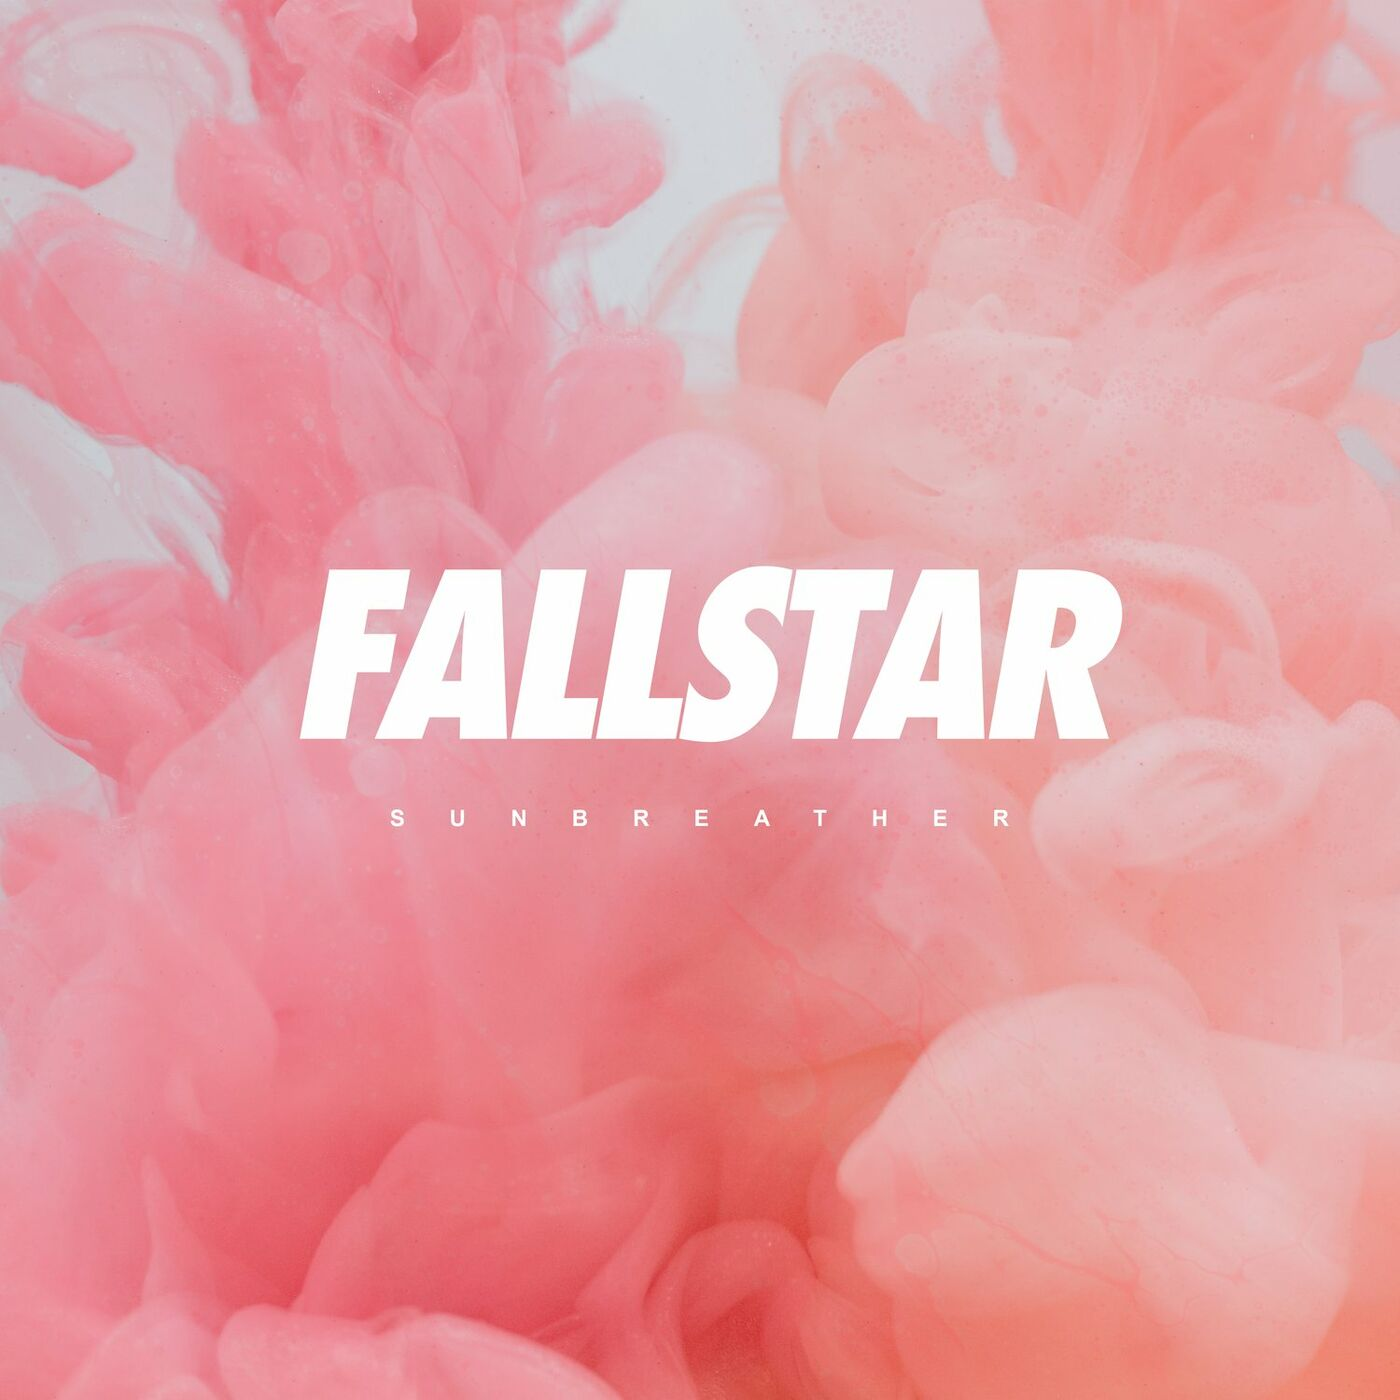 Fallstar - The Prism Glass [single] (2021)